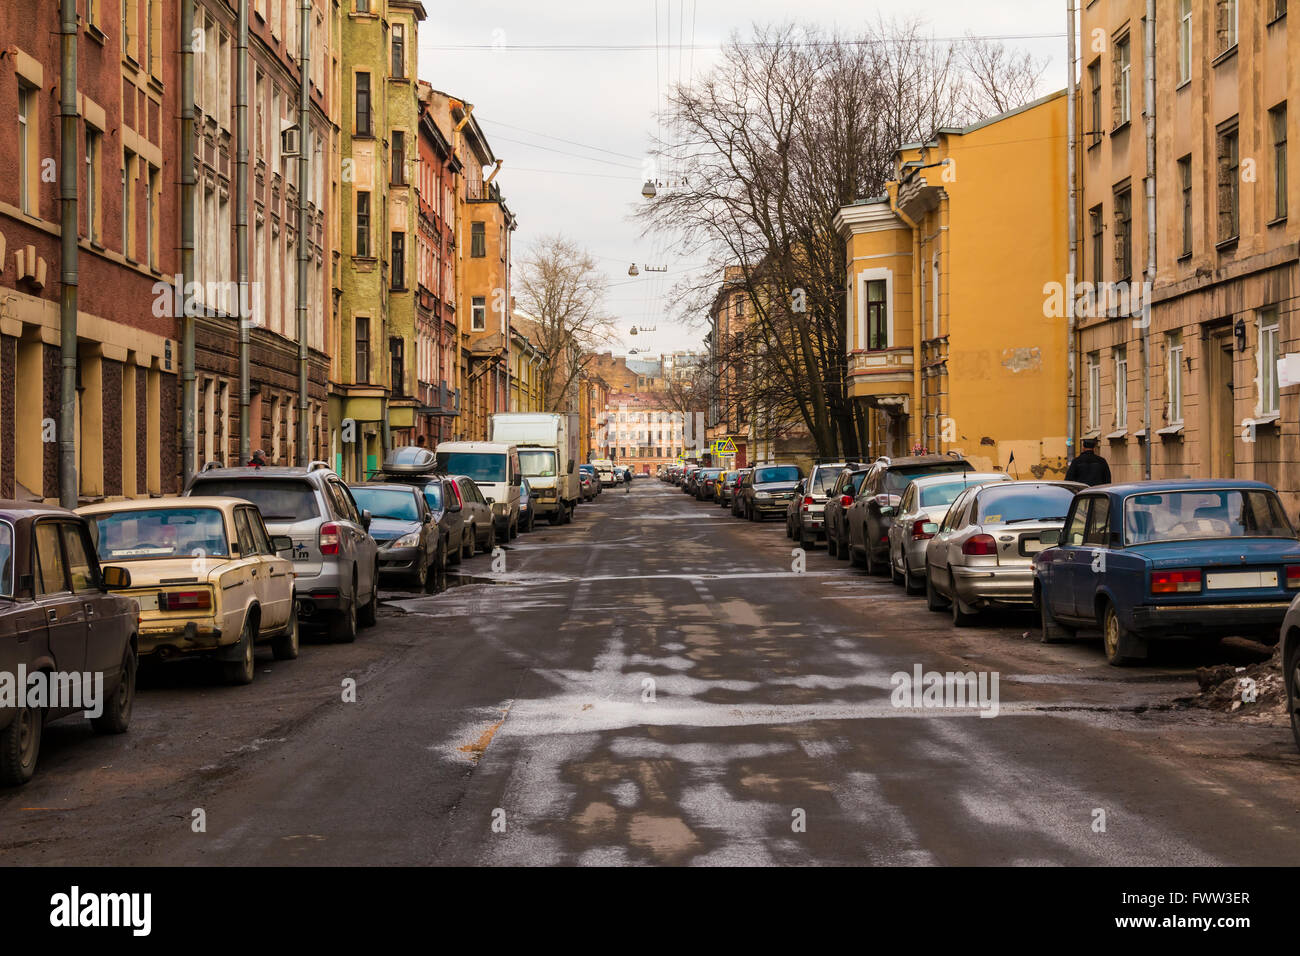 St. Petersburg, Russia - March 10, 2016: View of Vitebskaya street with parked cars on roadsides in wet spring day Stock Photo